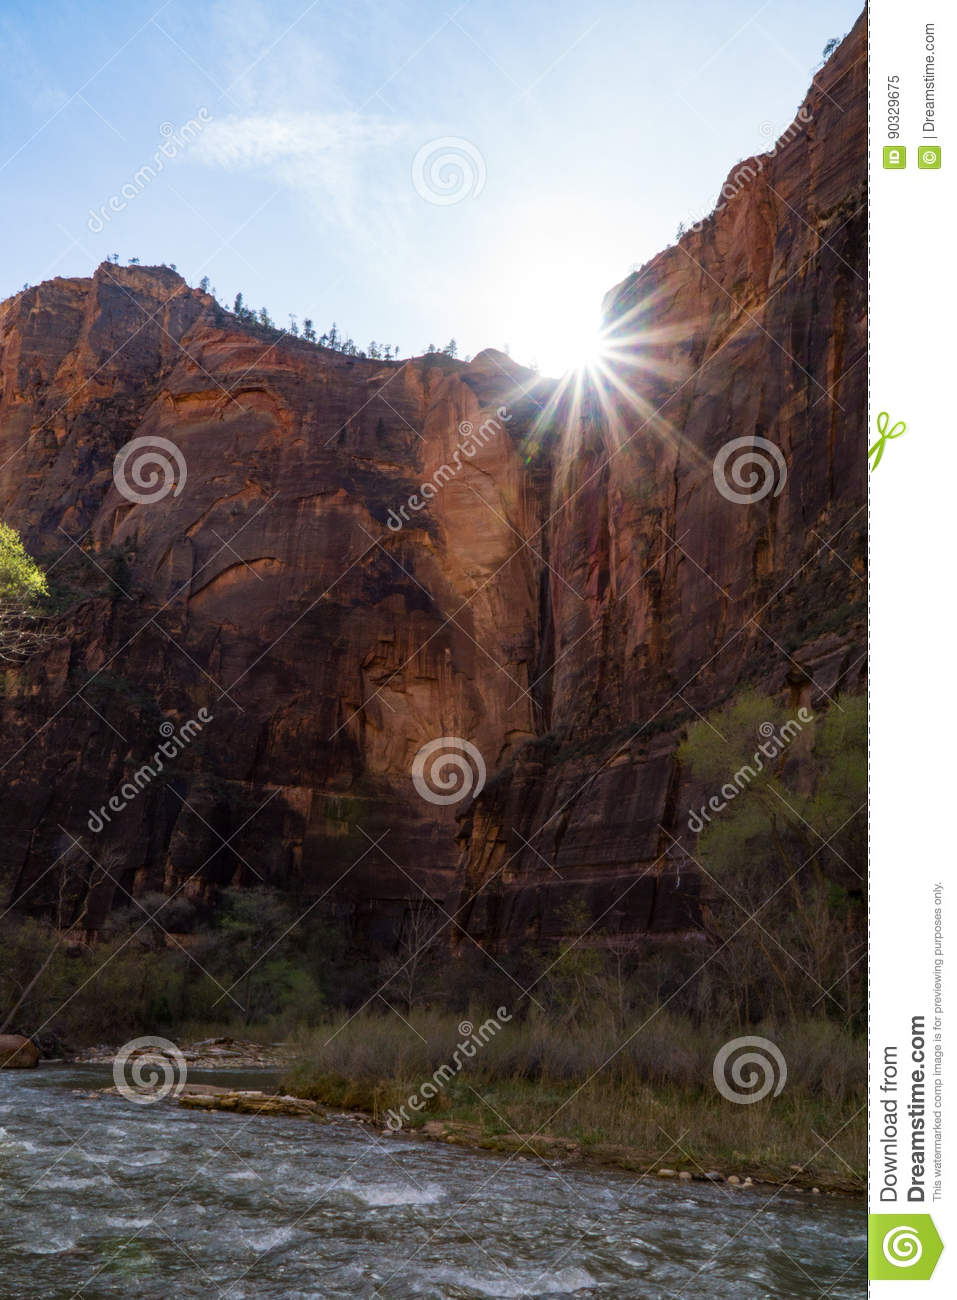 Sun Setting in Zion National Park